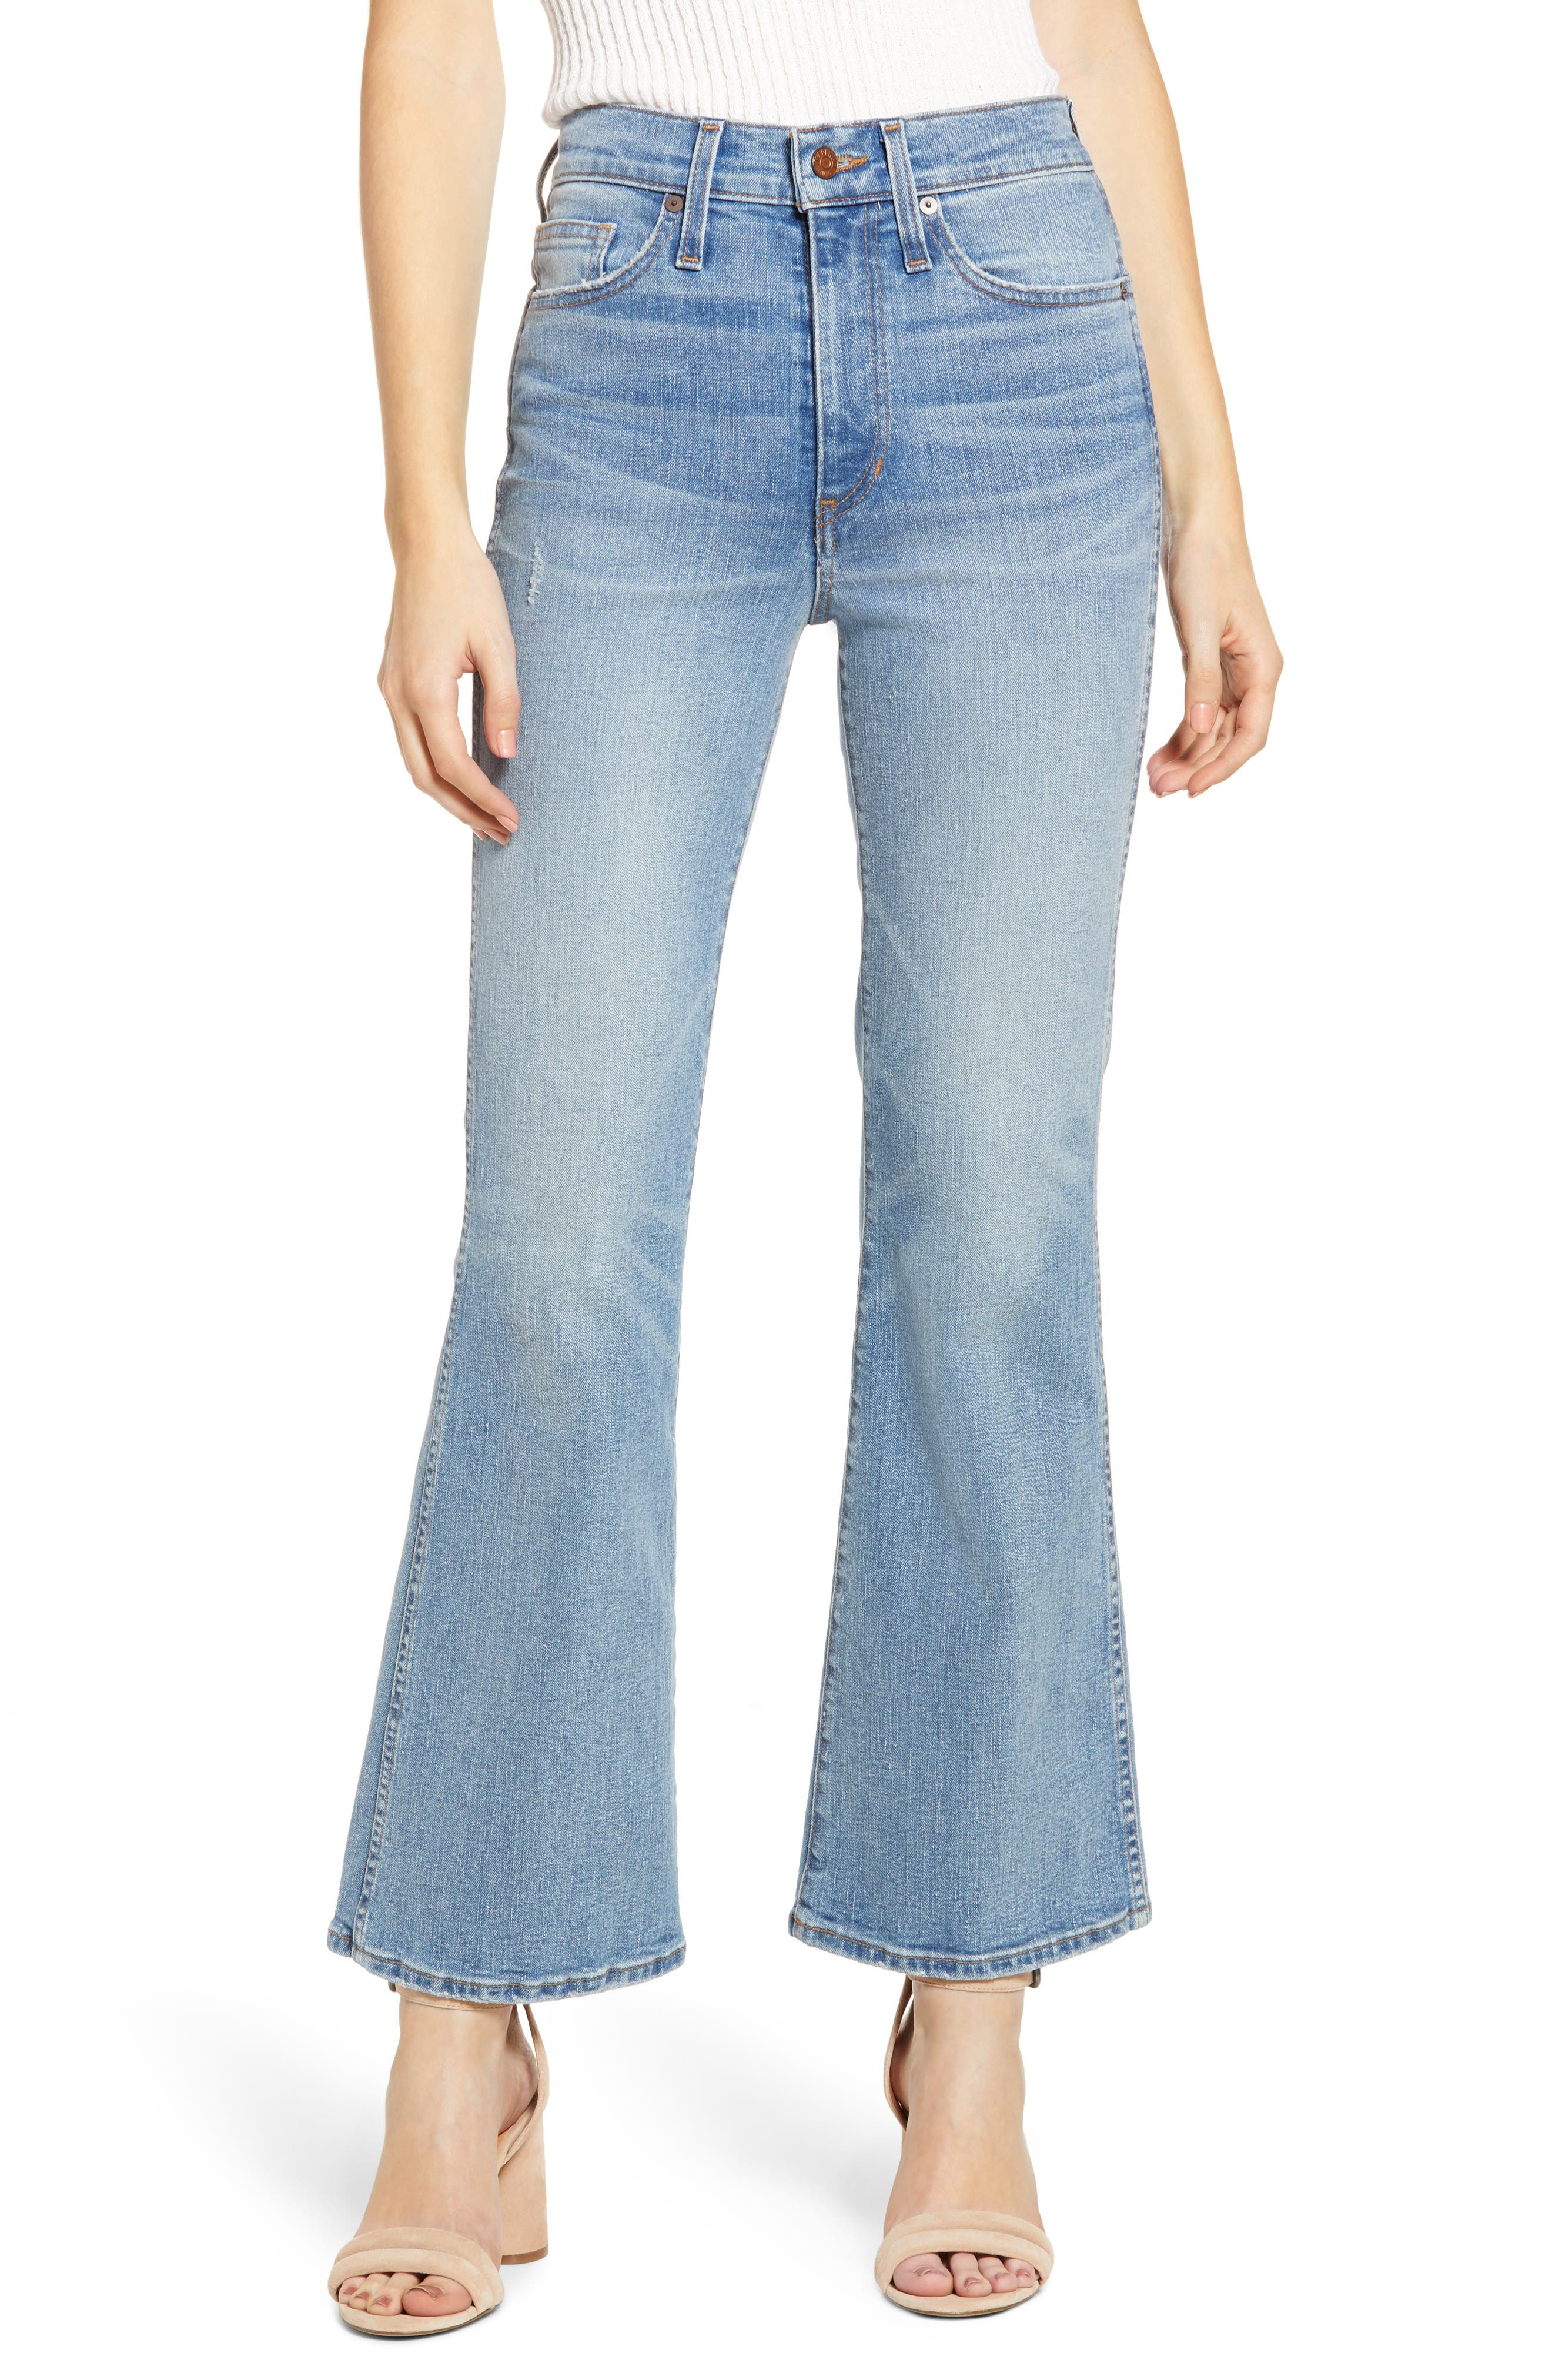 60s – 70s Pants, Jeans, Hippie, Bell Bottoms, Jumpsuits Womens Madewell Retro Flare Jeans Size 28 - Blue $128.00 AT vintagedancer.com